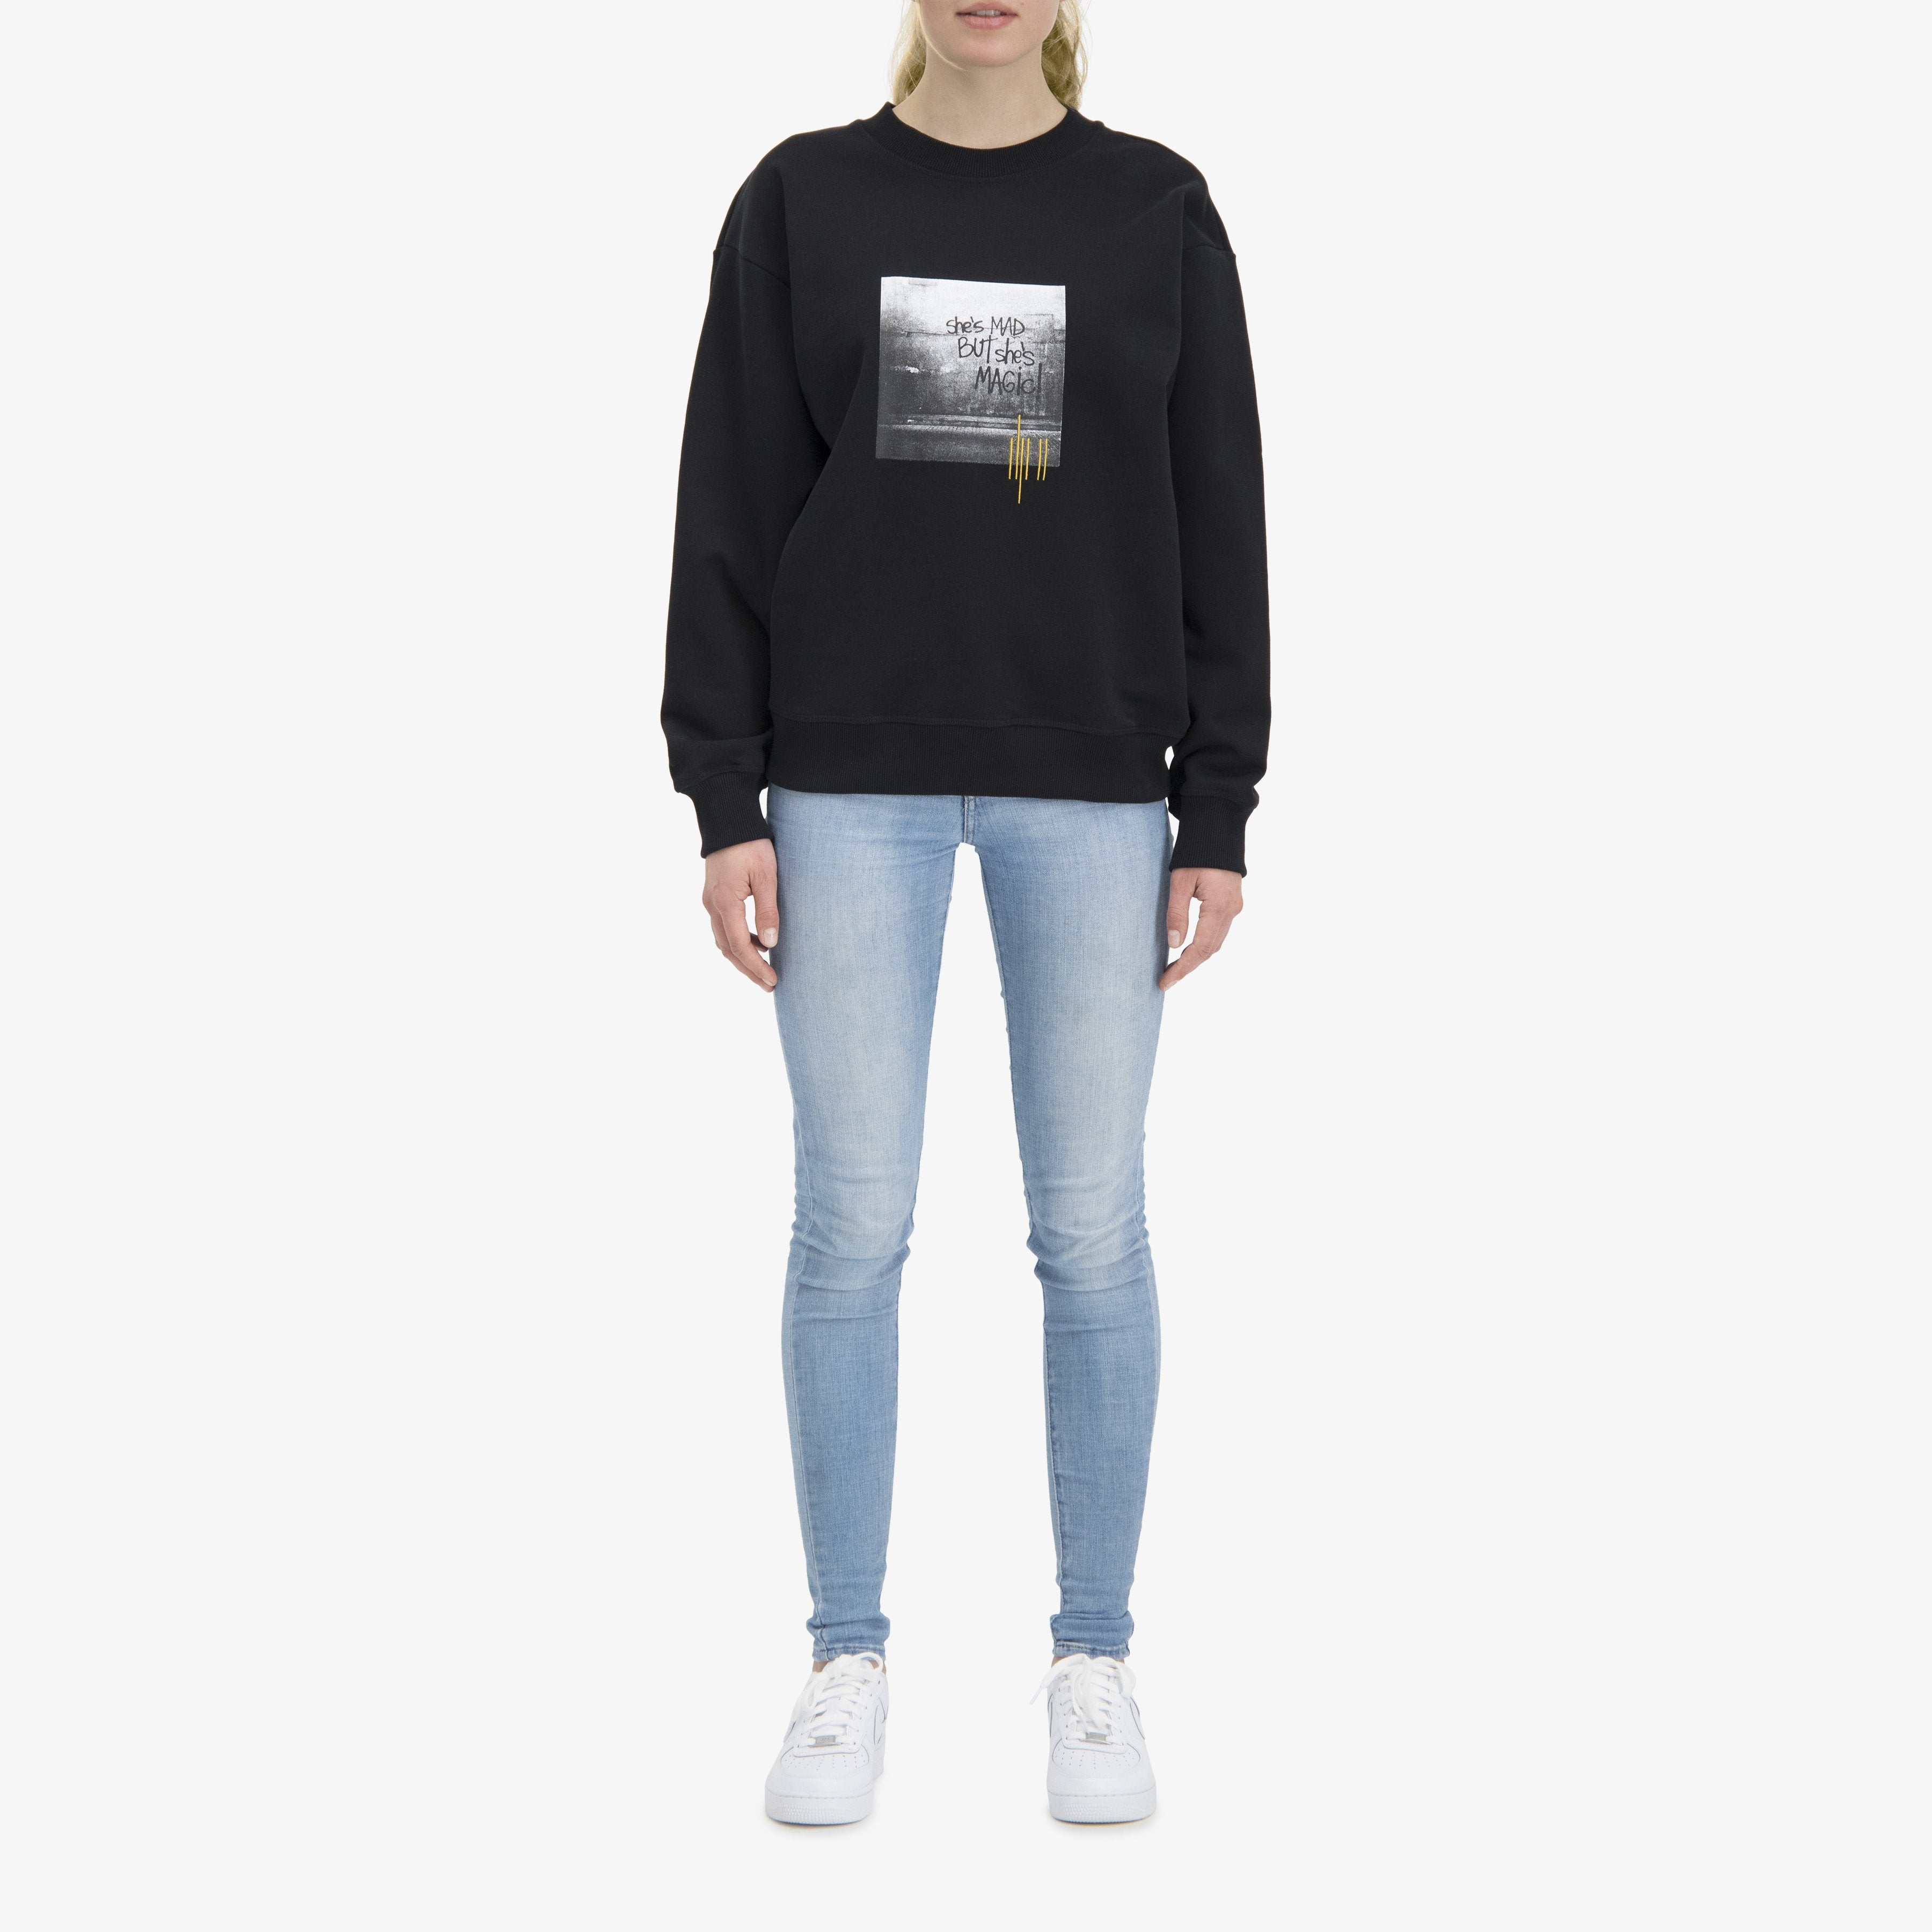 She's Mad But She's Magic Sweater Black Unisex